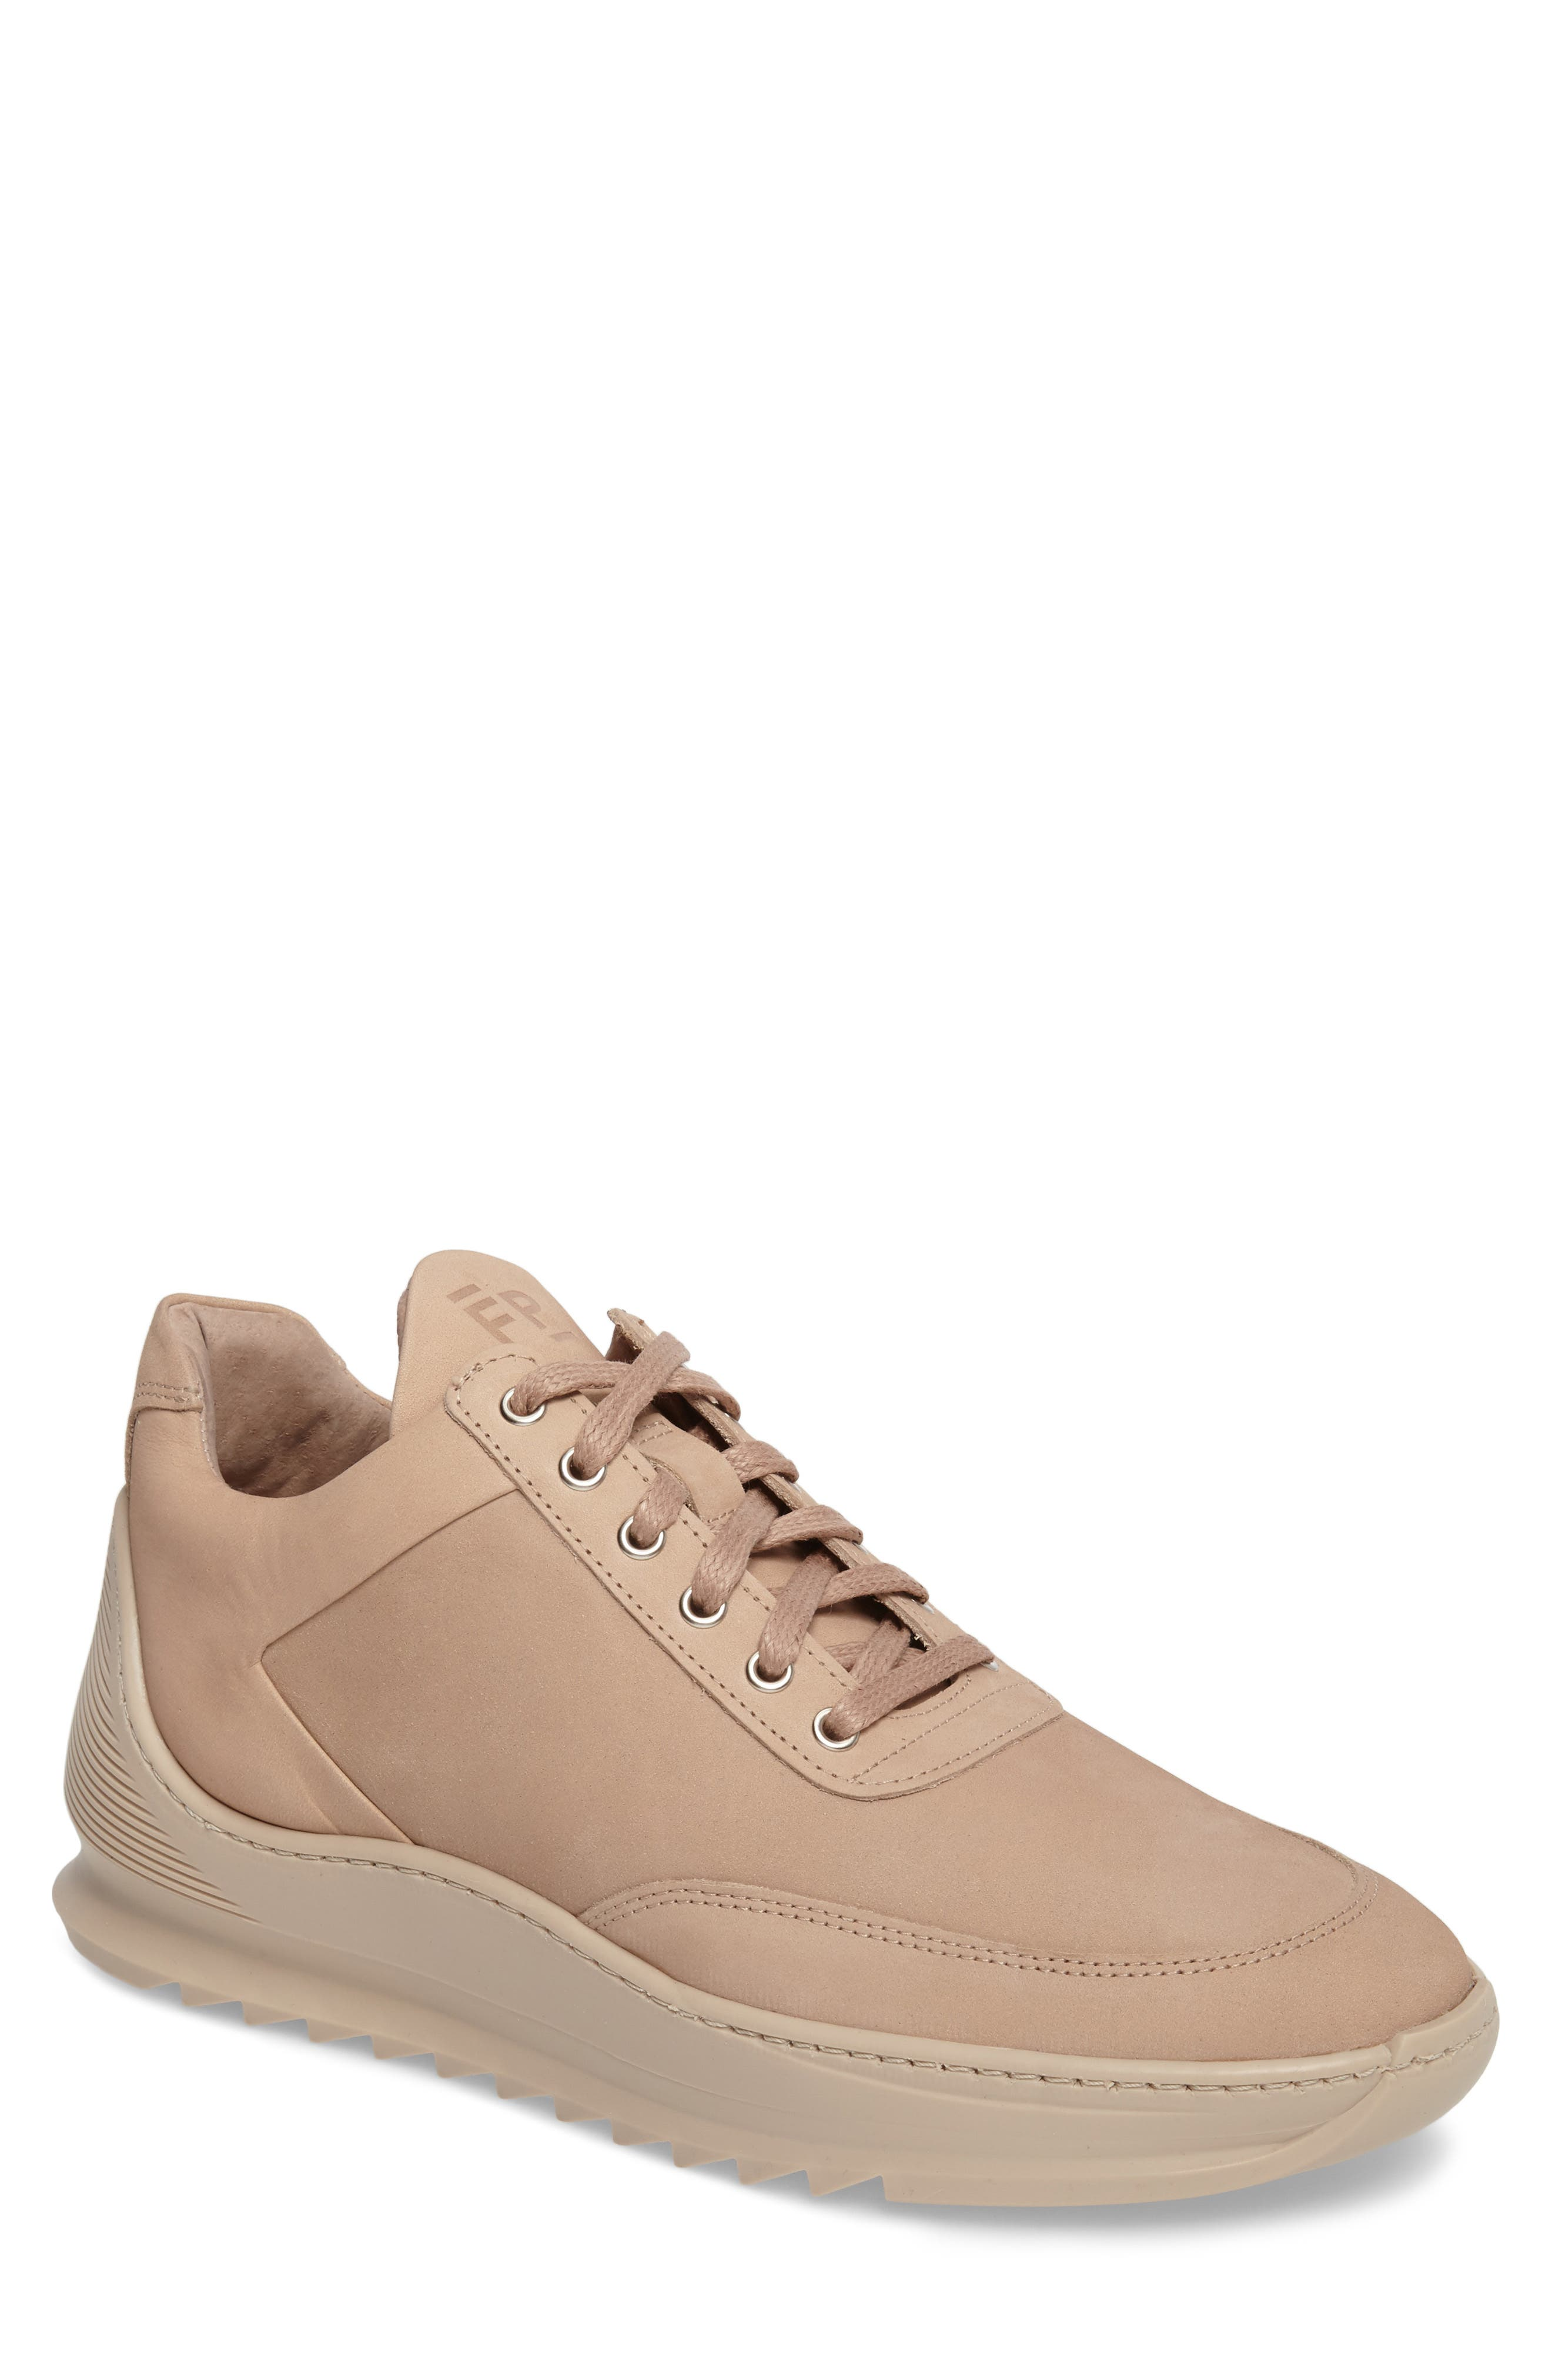 Low-Top Sneaker,                         Main,                         color, 250